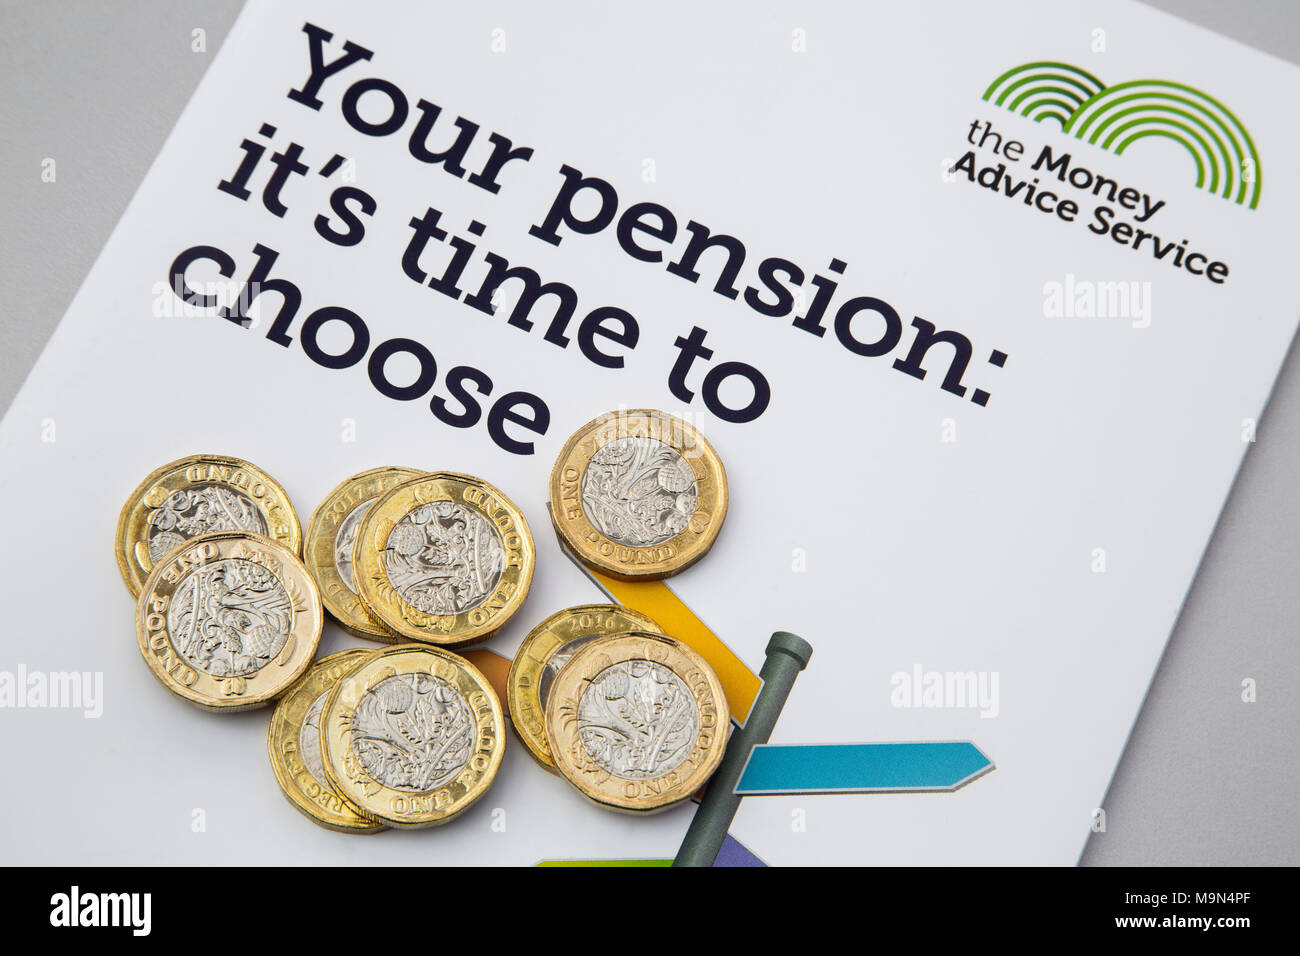 British new pound coins Sterling pounds GBP on a Money Advice Service booklet Your Pension about choosing pensions for retirement. England UK Britain - Stock Image